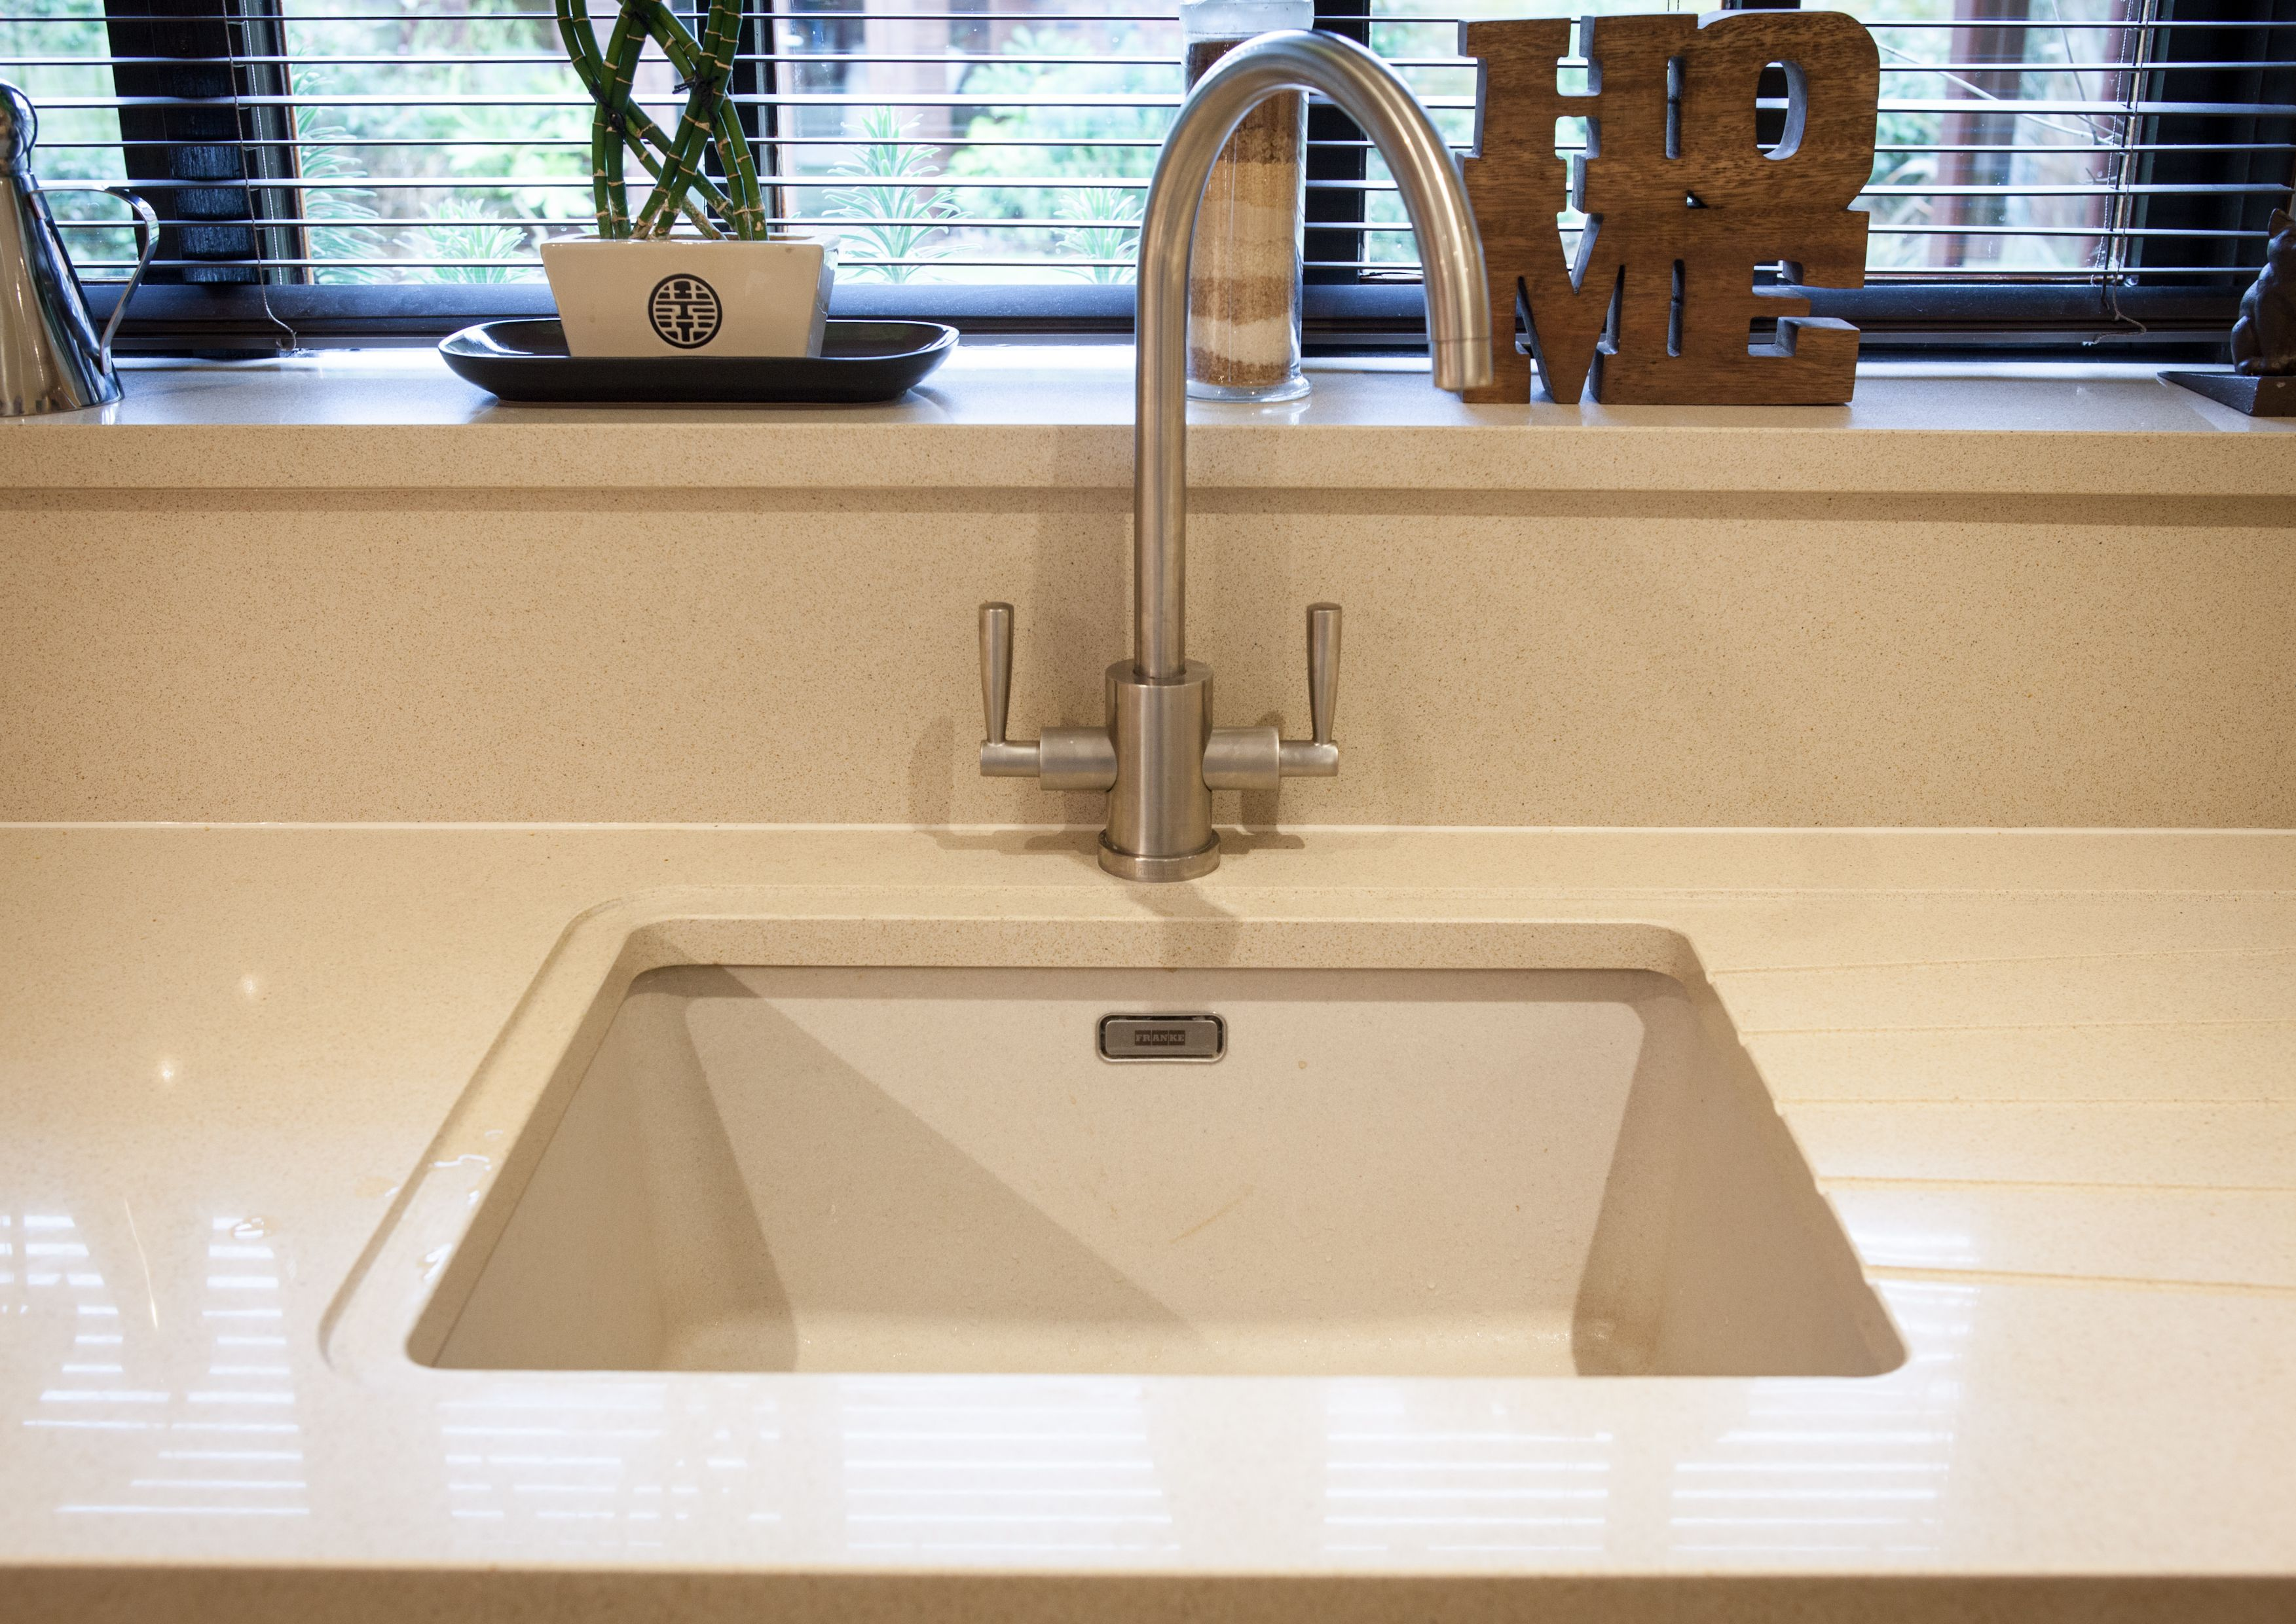 Fragranite Sink By Franke Composite Material In A Beige Colour Matching The Worktop Comes With A Lon Kitchen Worktop Kitchen Splashback Kitchen Inspirations